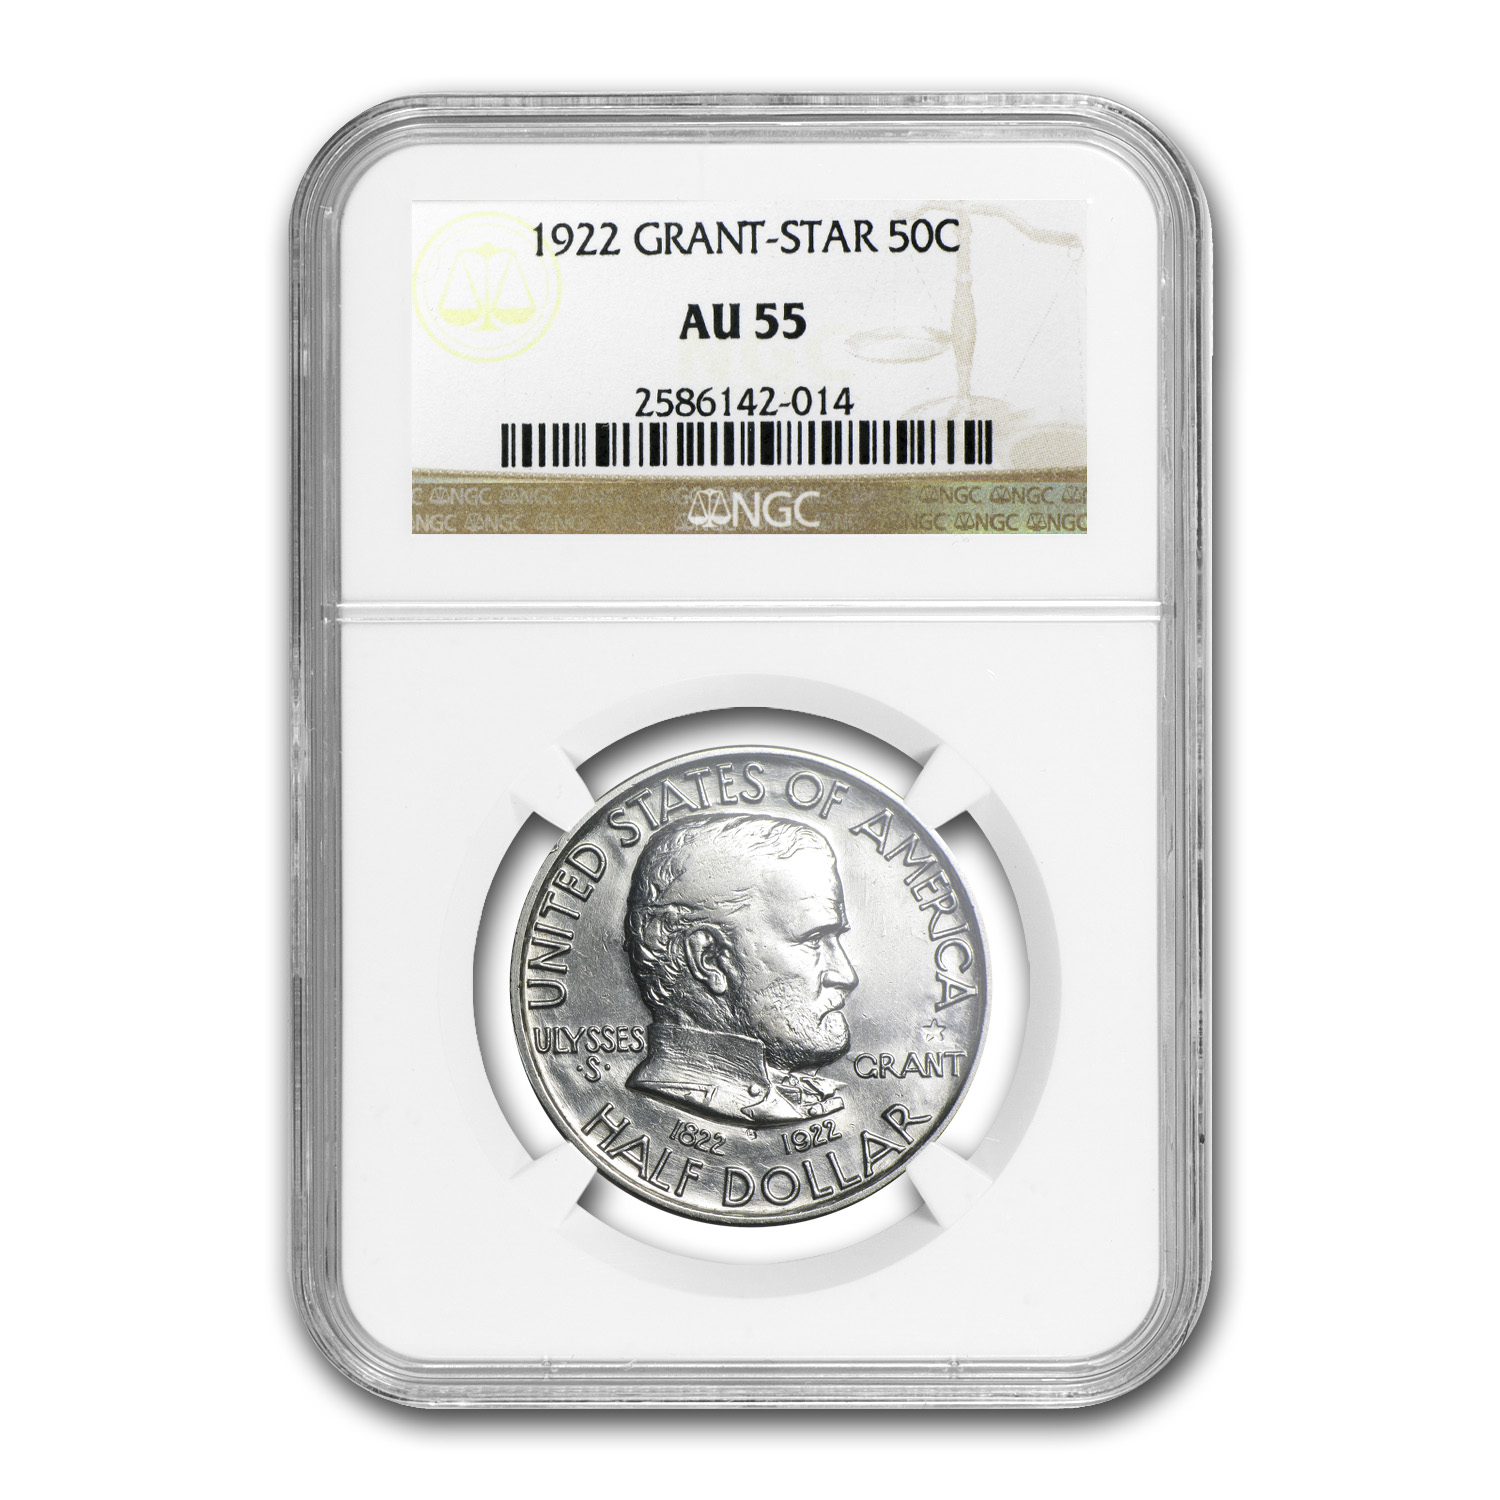 1922 Grant Memorial Commemorative w/ STAR - AU-55 NGC